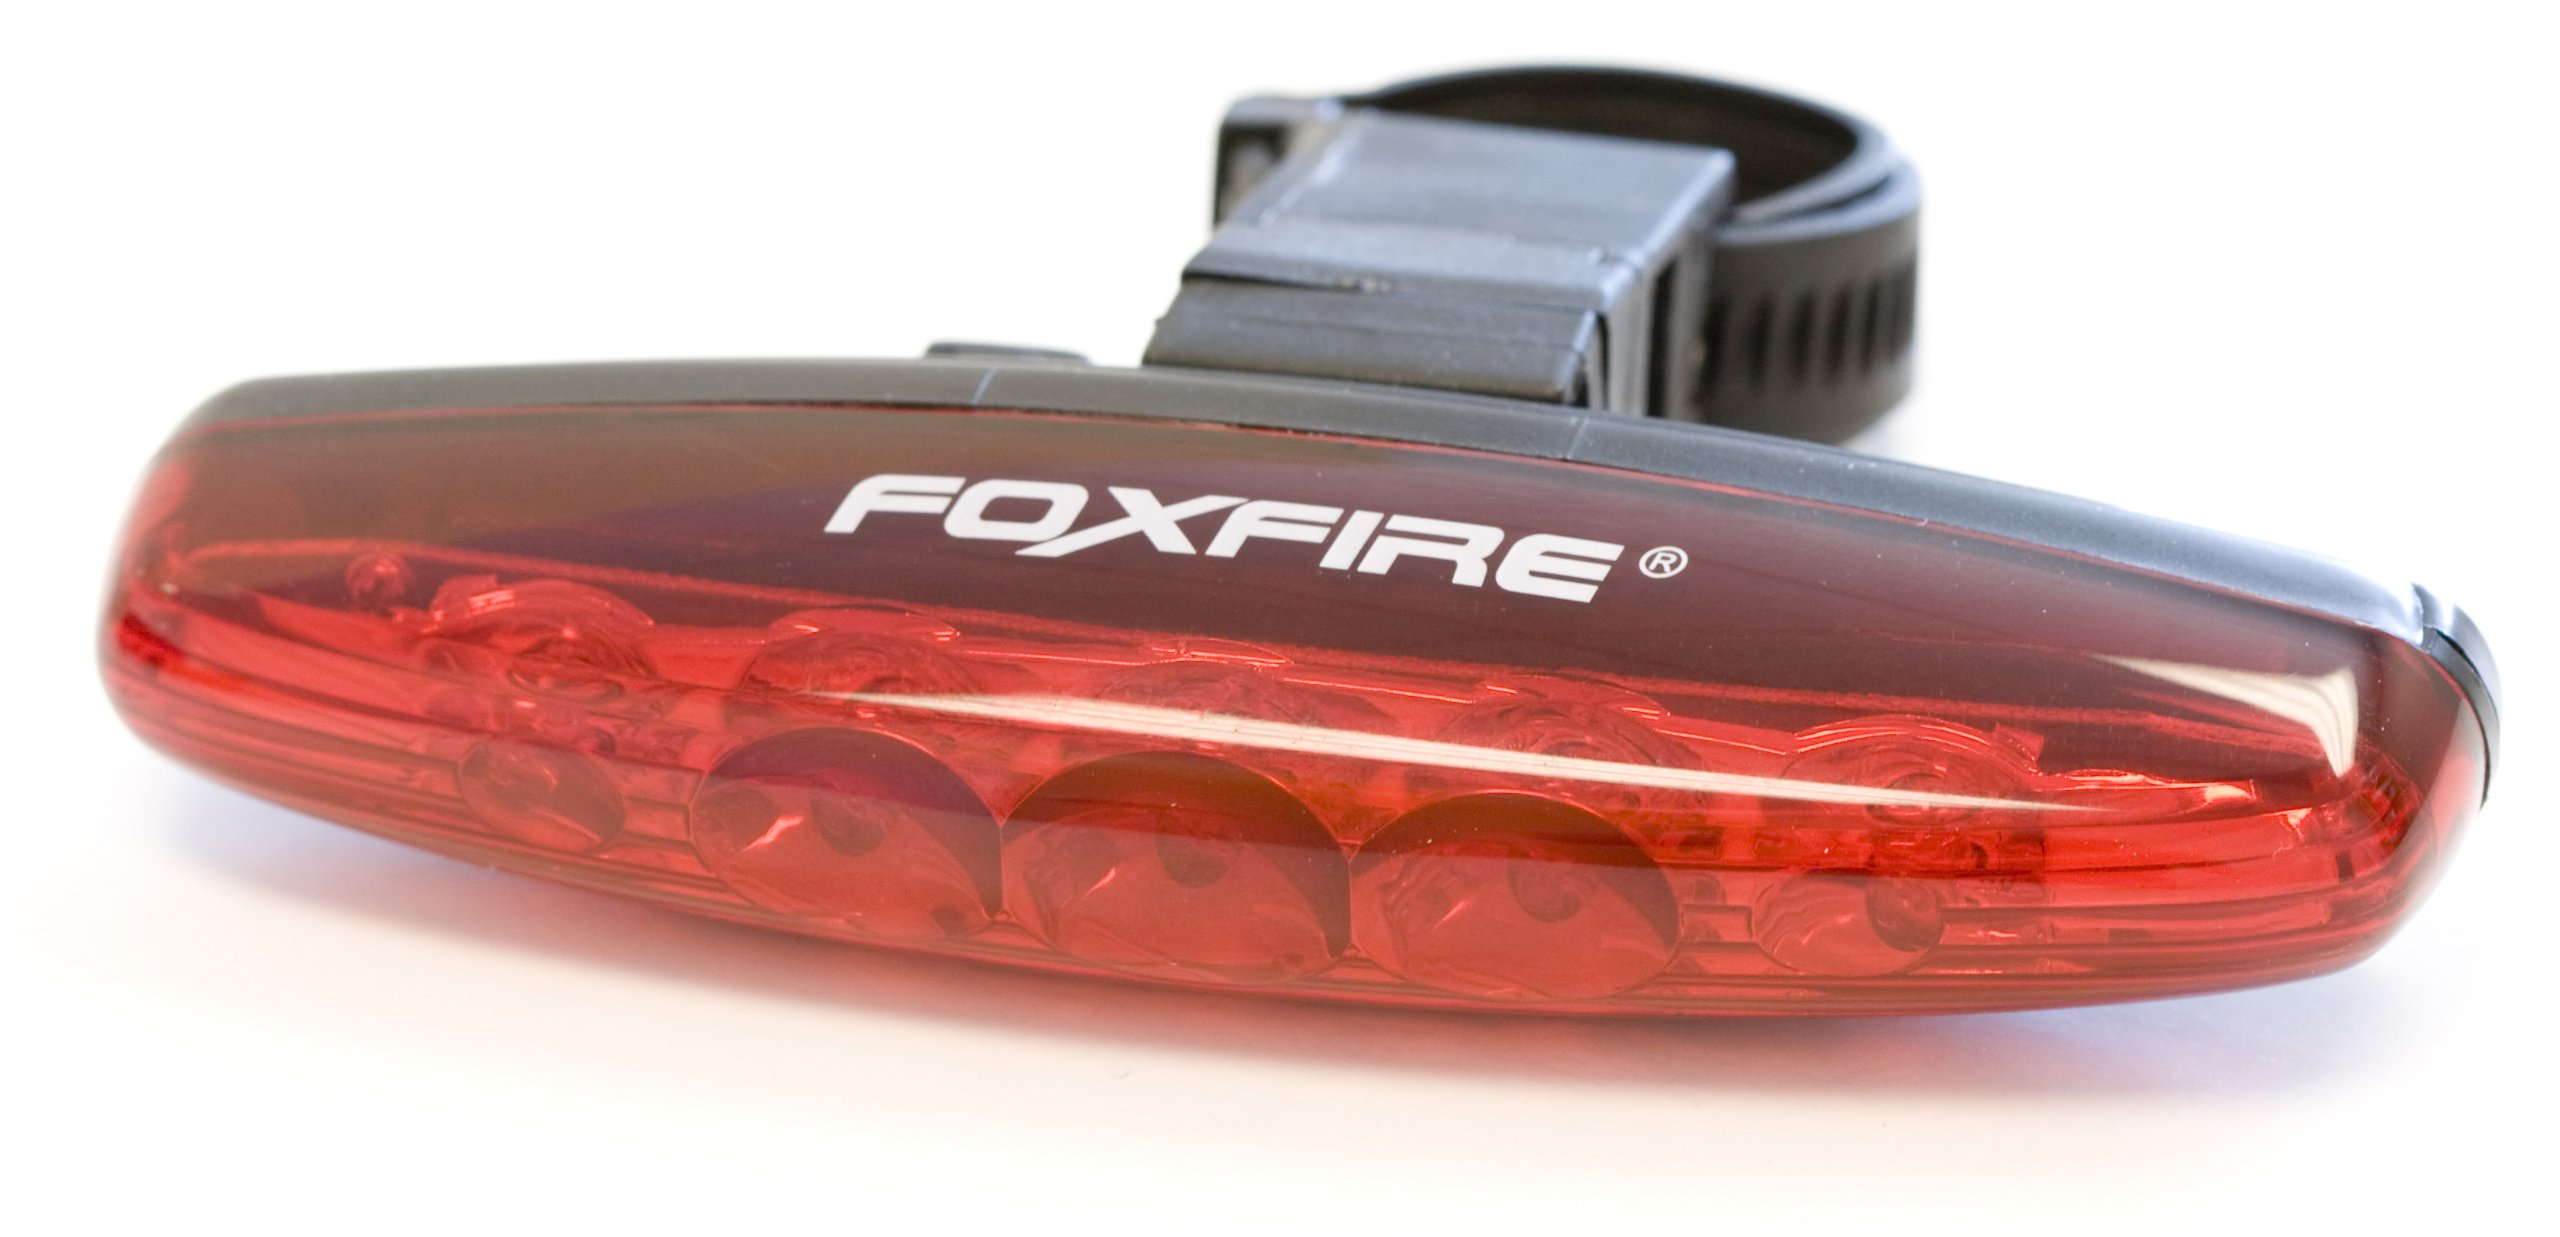 FoxFire 7005200 Wide Tail Weather Resistant Light, 5 LEDs